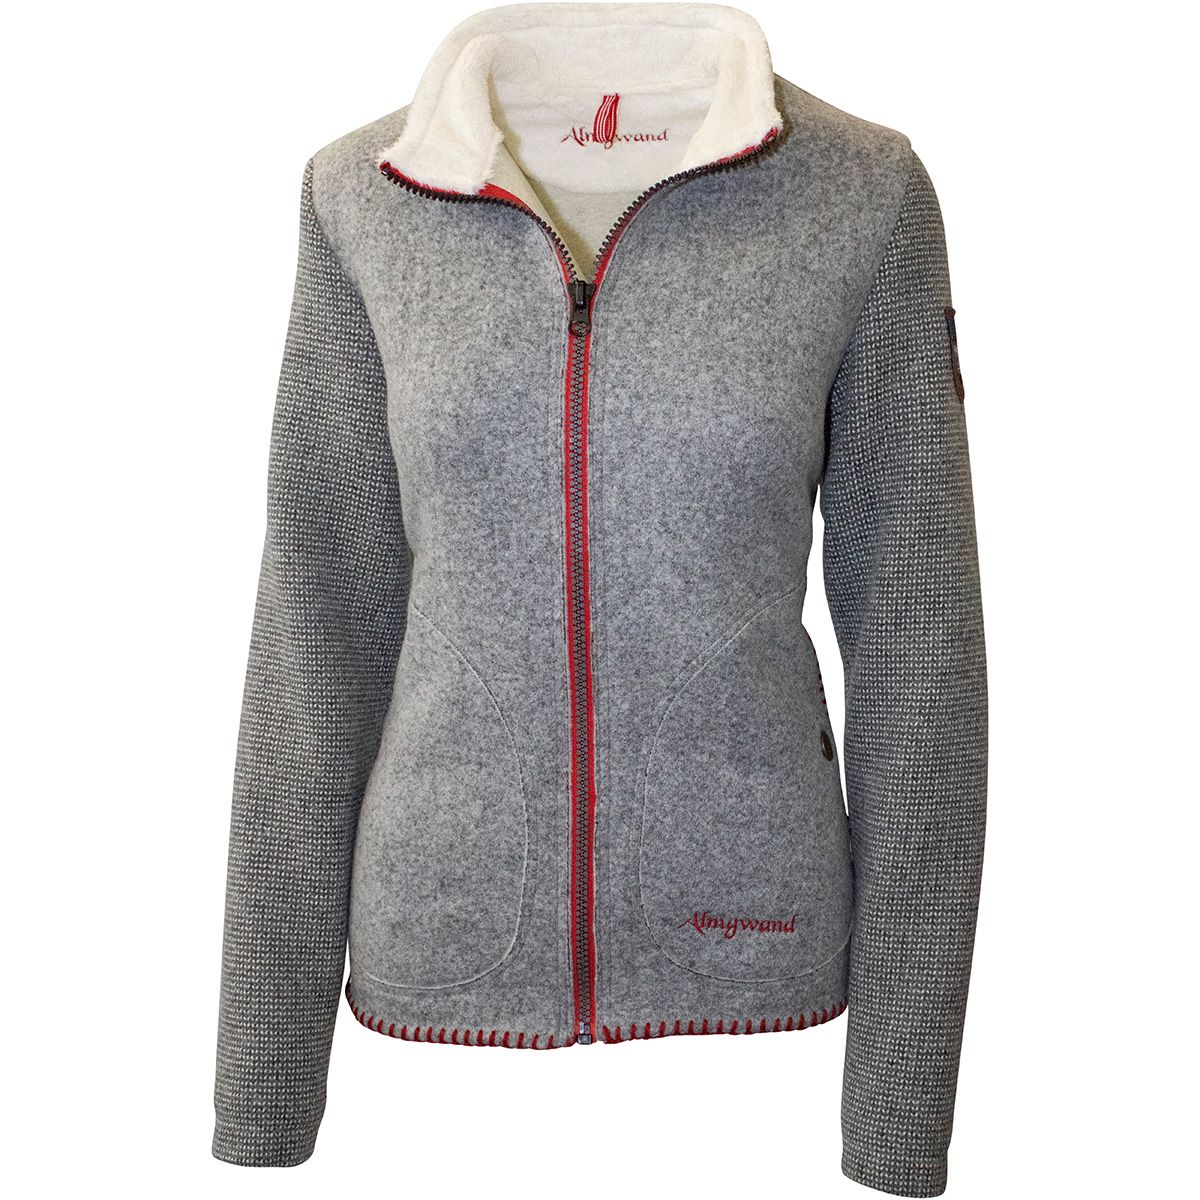 Almgwand Damen Gernkogel Jacke  | Strickjacken > Damen